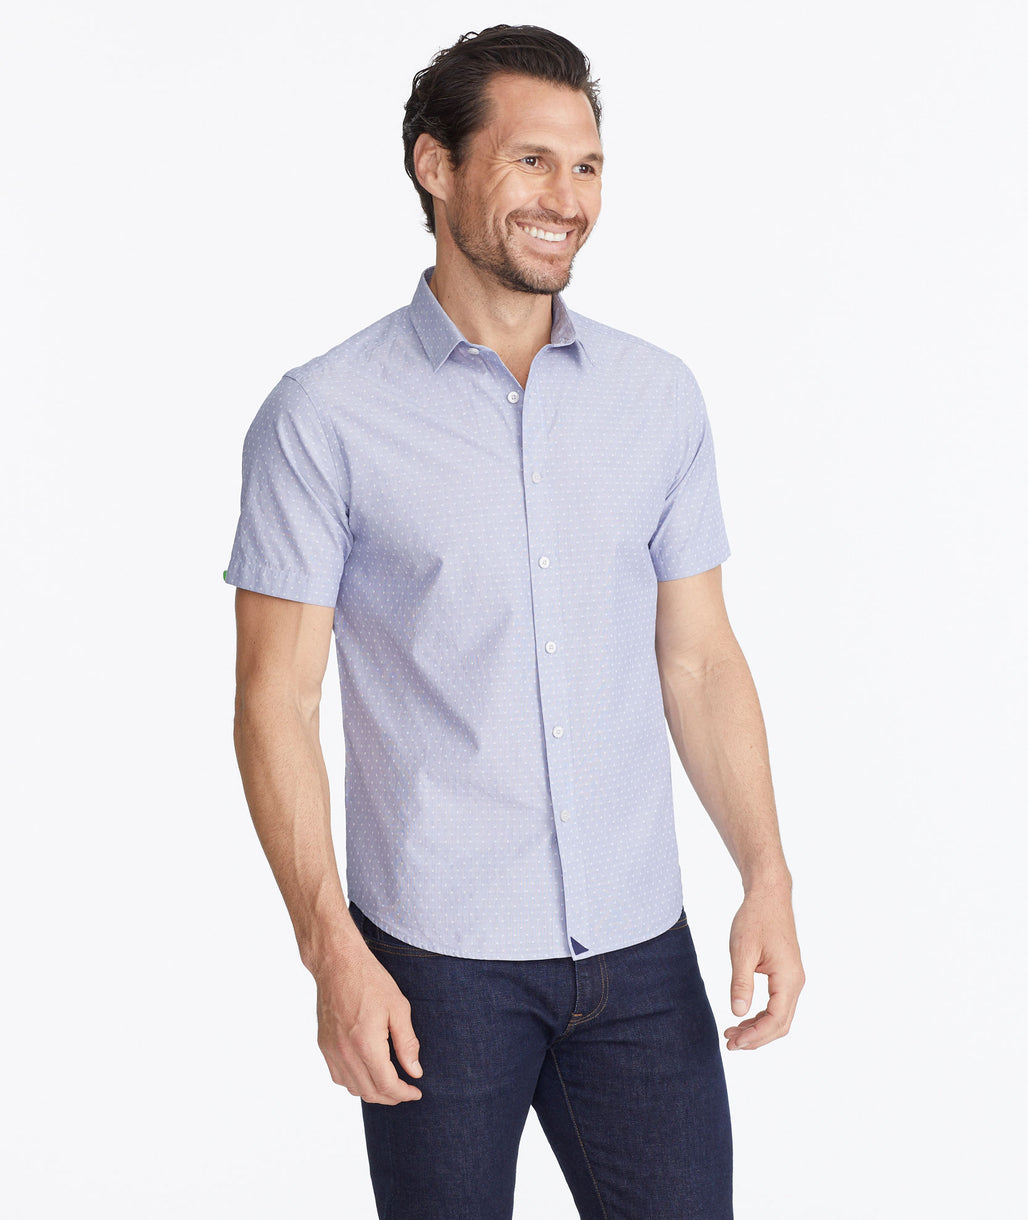 Model wearing a Dark Blue Classic Short-Sleeve Shirt with Dot Print